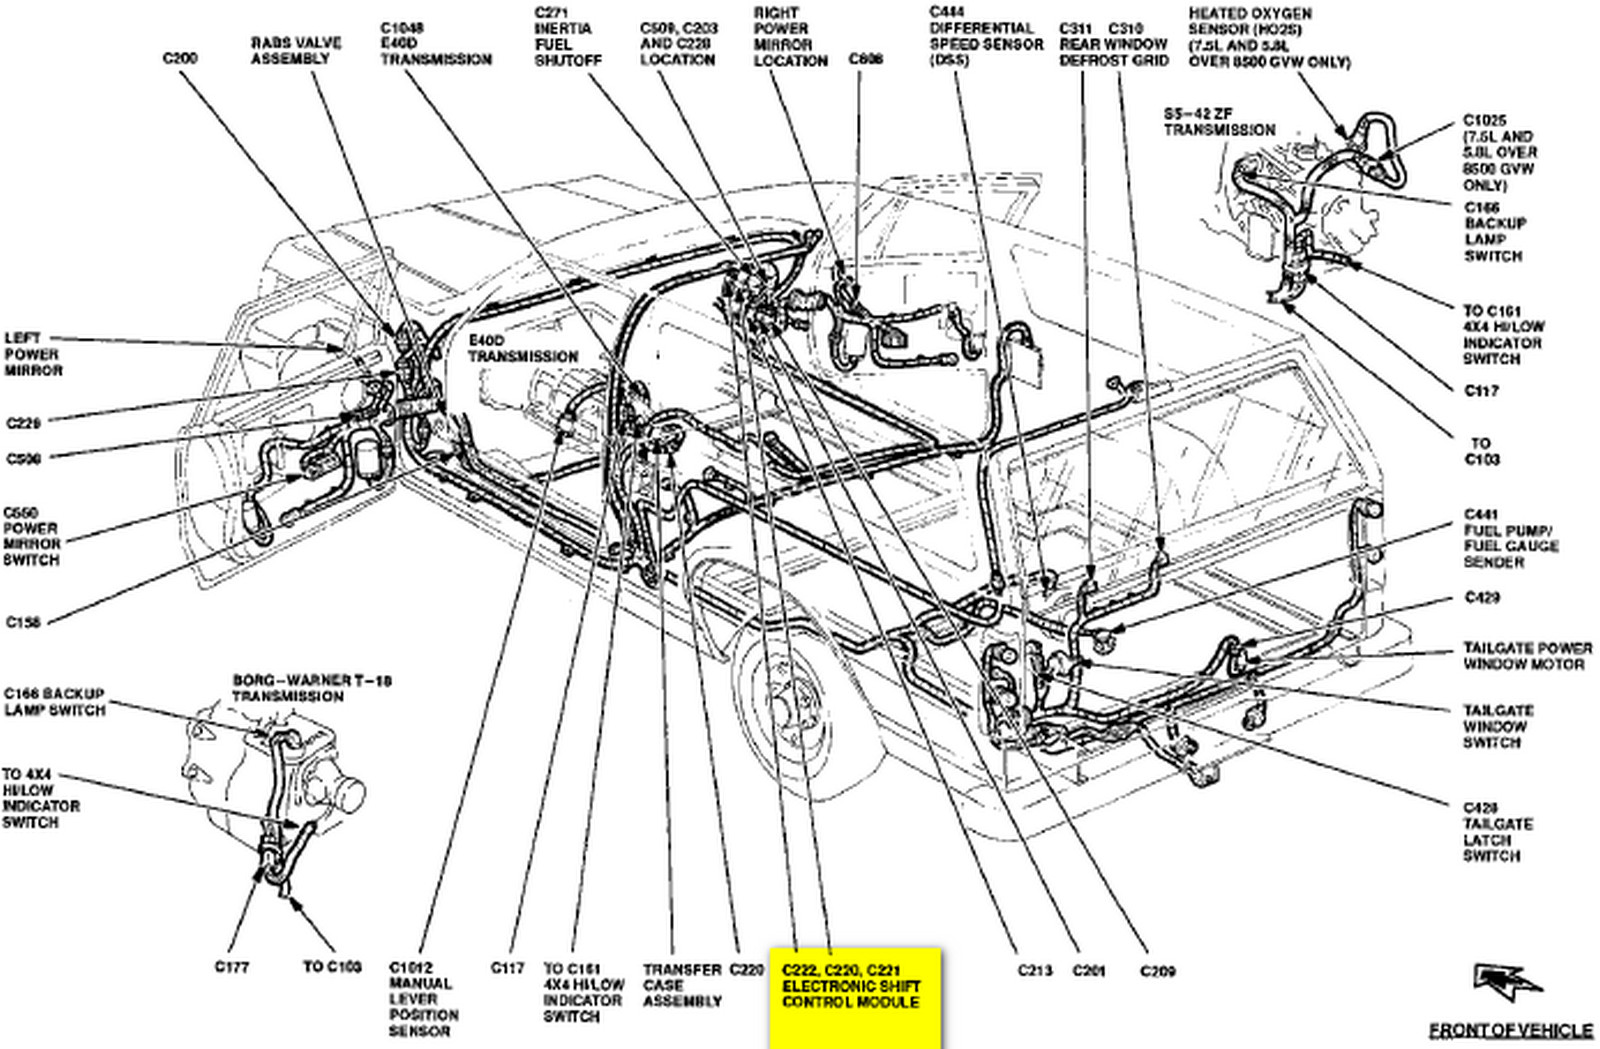 Where Is The Fwd Module On A 1993 Ford Bronco